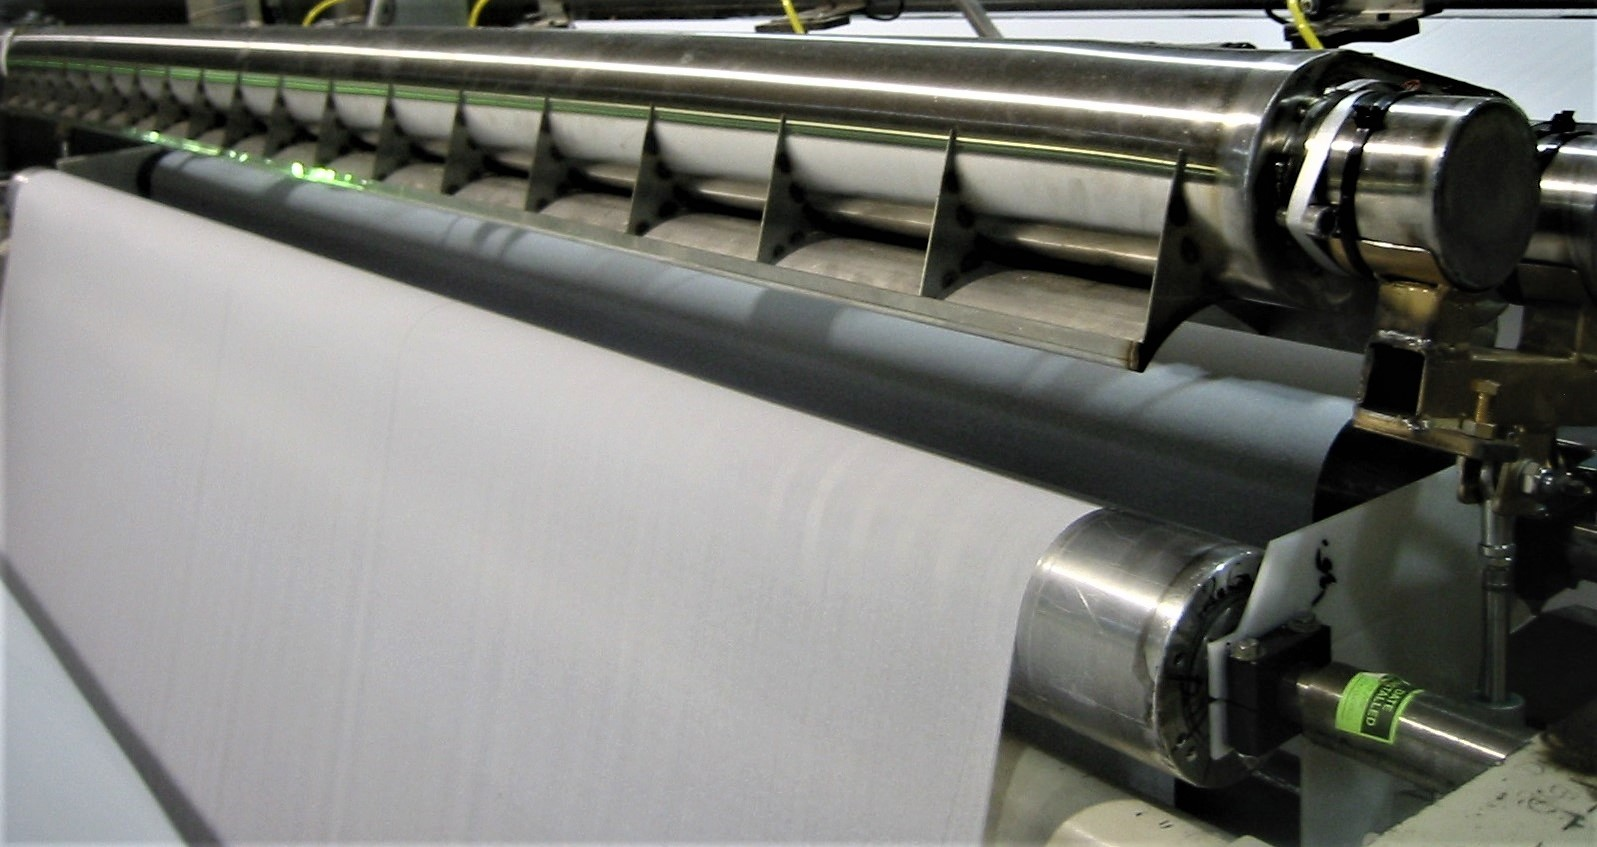 The optimised dust hood installed over a roller in the paper mill.